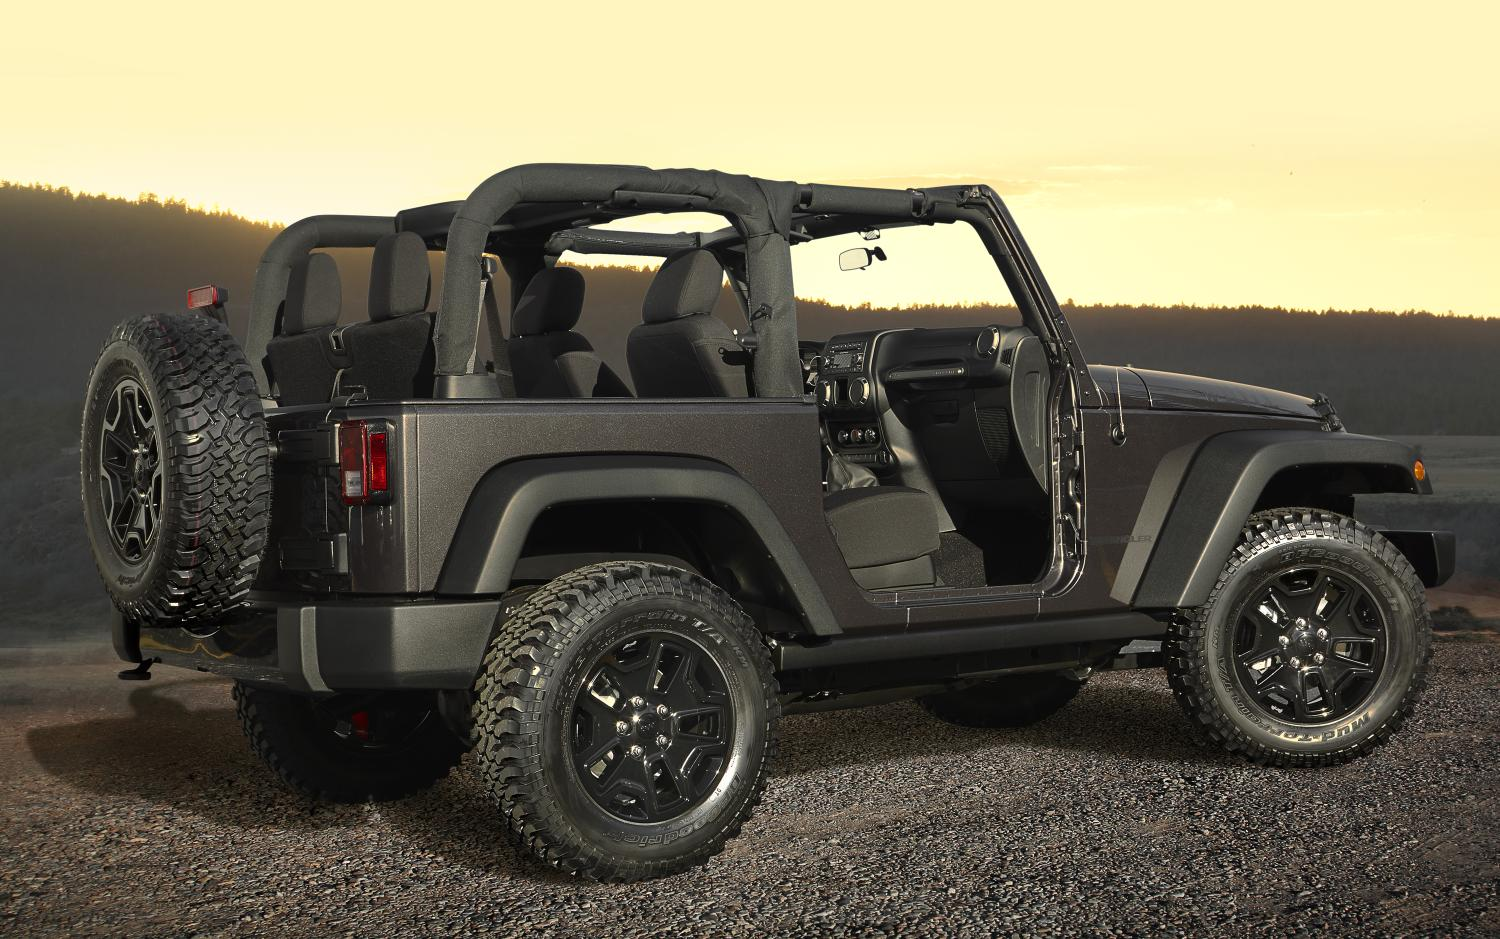 2014 jeep wrangler willys wheeler edition unveiled autoevolution. Black Bedroom Furniture Sets. Home Design Ideas